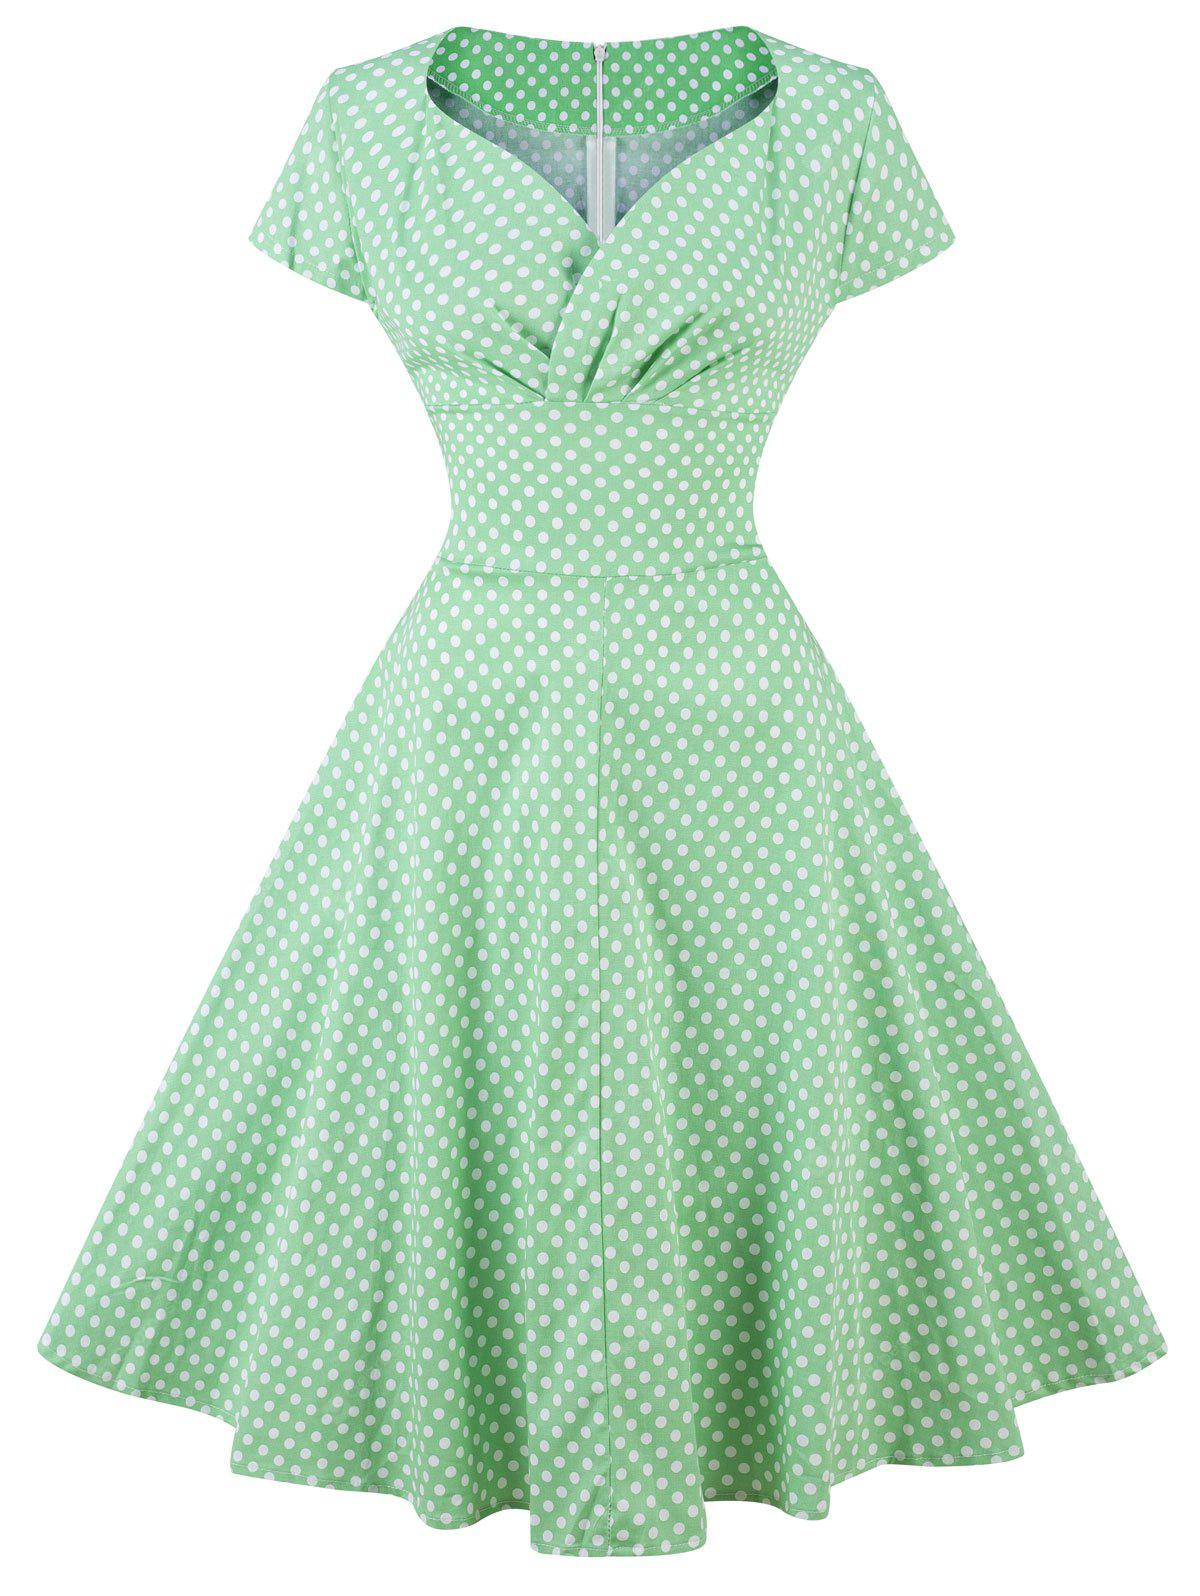 Retro Polka Dot Pin Up Party Dress